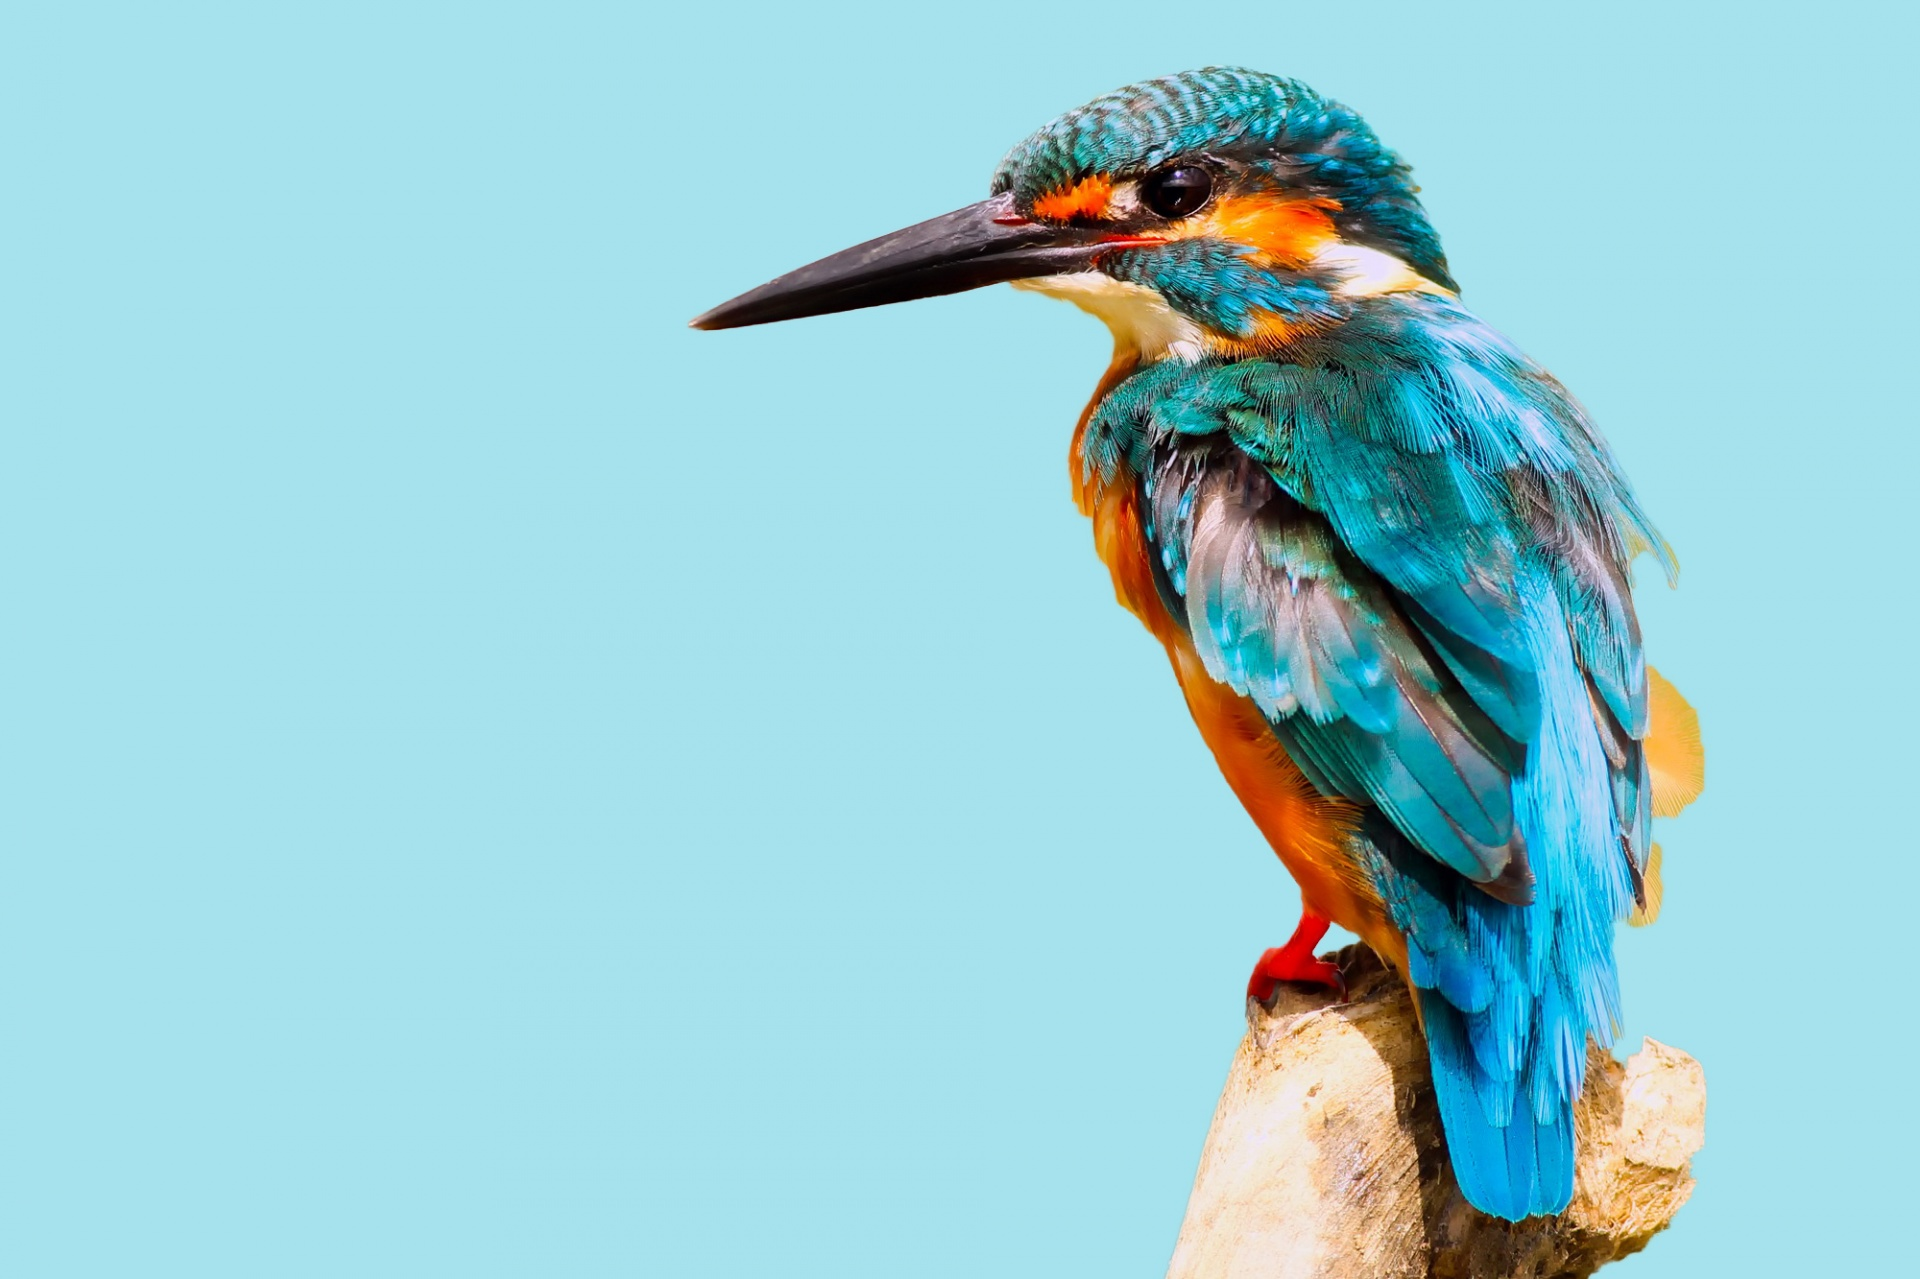 Kingfisher Bird Blue Sky Free Stock Photo - Public Domain Pictures